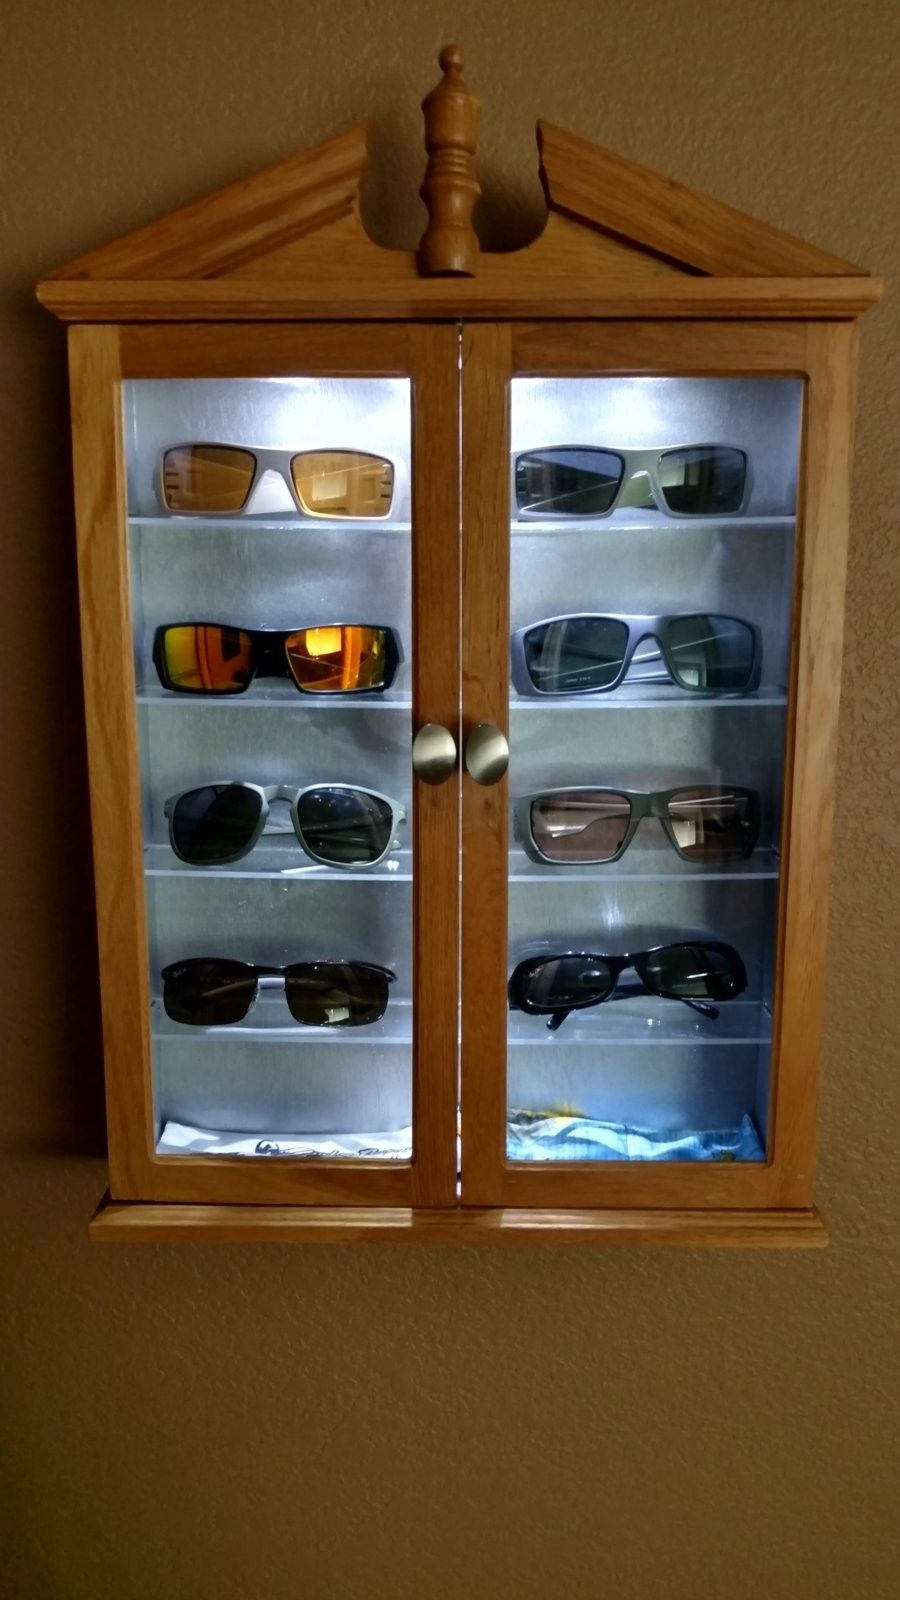 Small DIY wall hanger cabinet project. - IMG_20160225_164230652_HDR.jpg